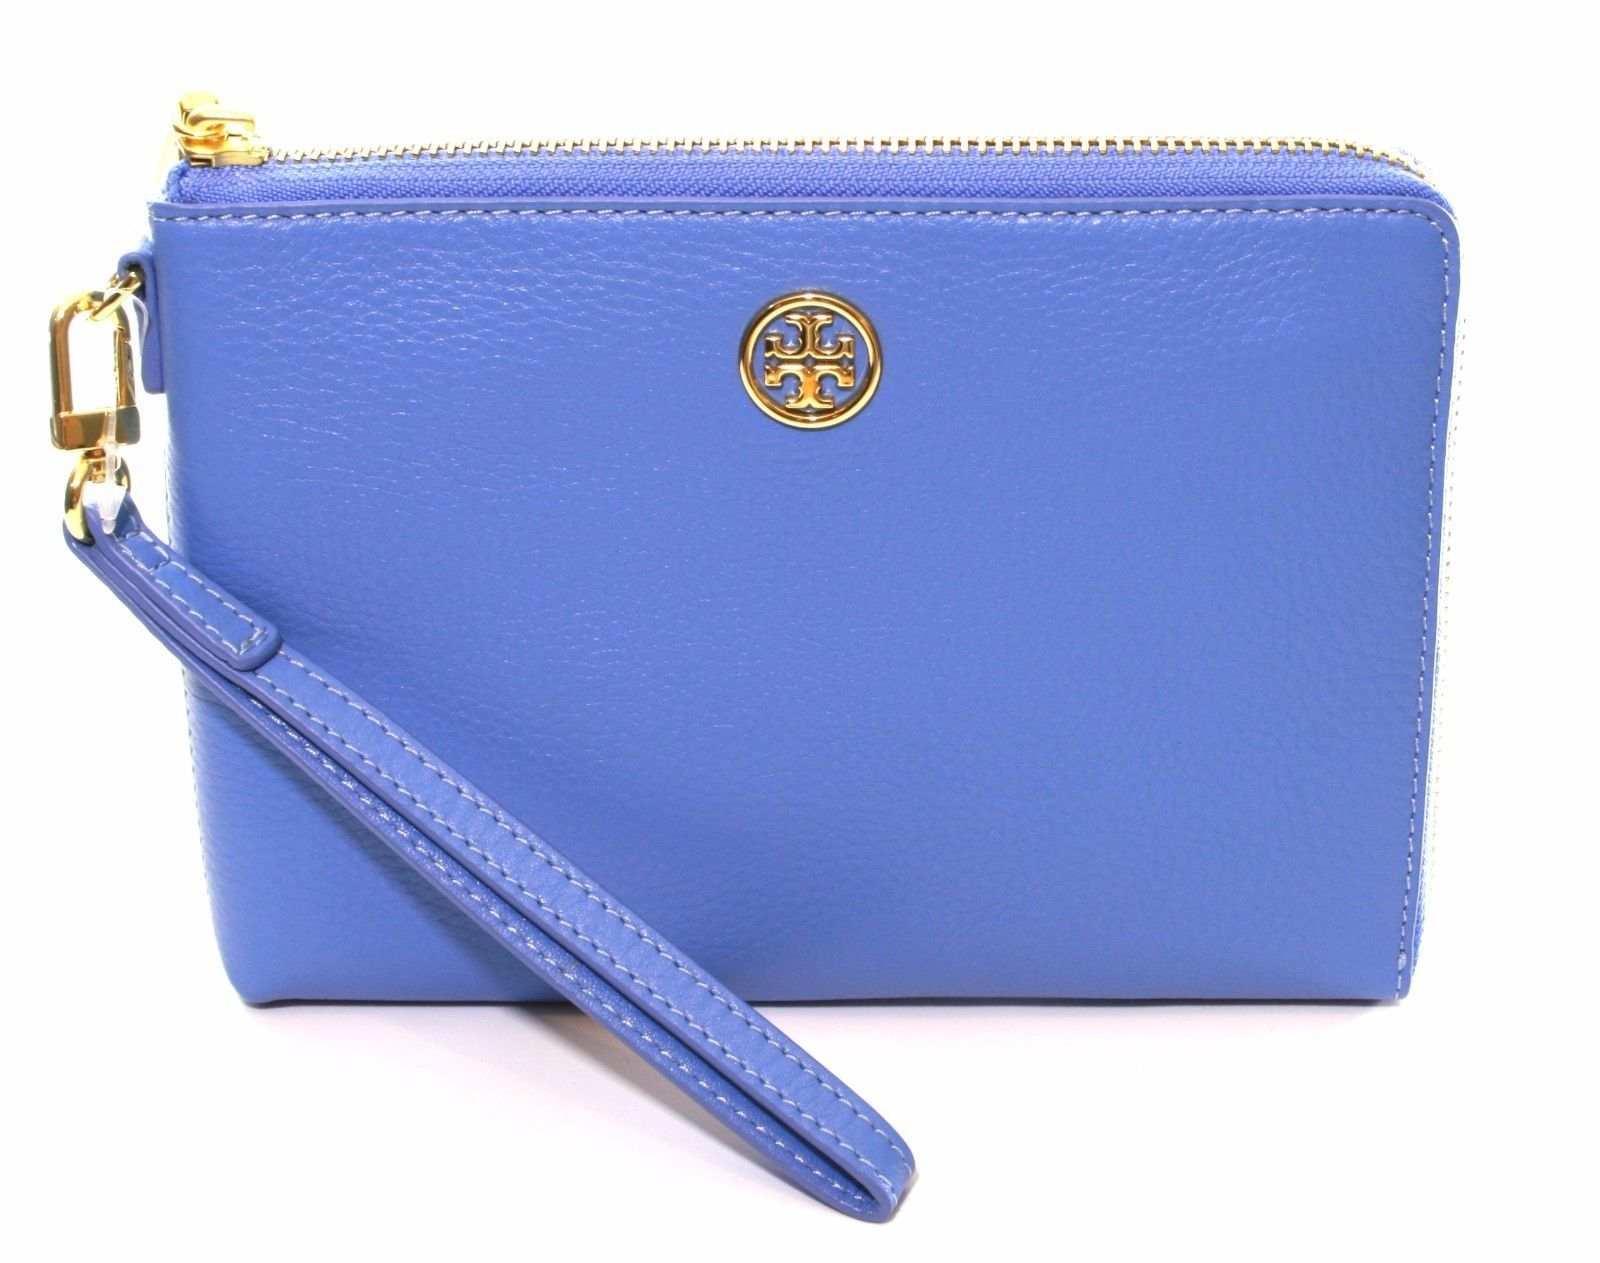 Primary image for Tory Burch Landon Large Wristlet Blue Dusk RRP £165